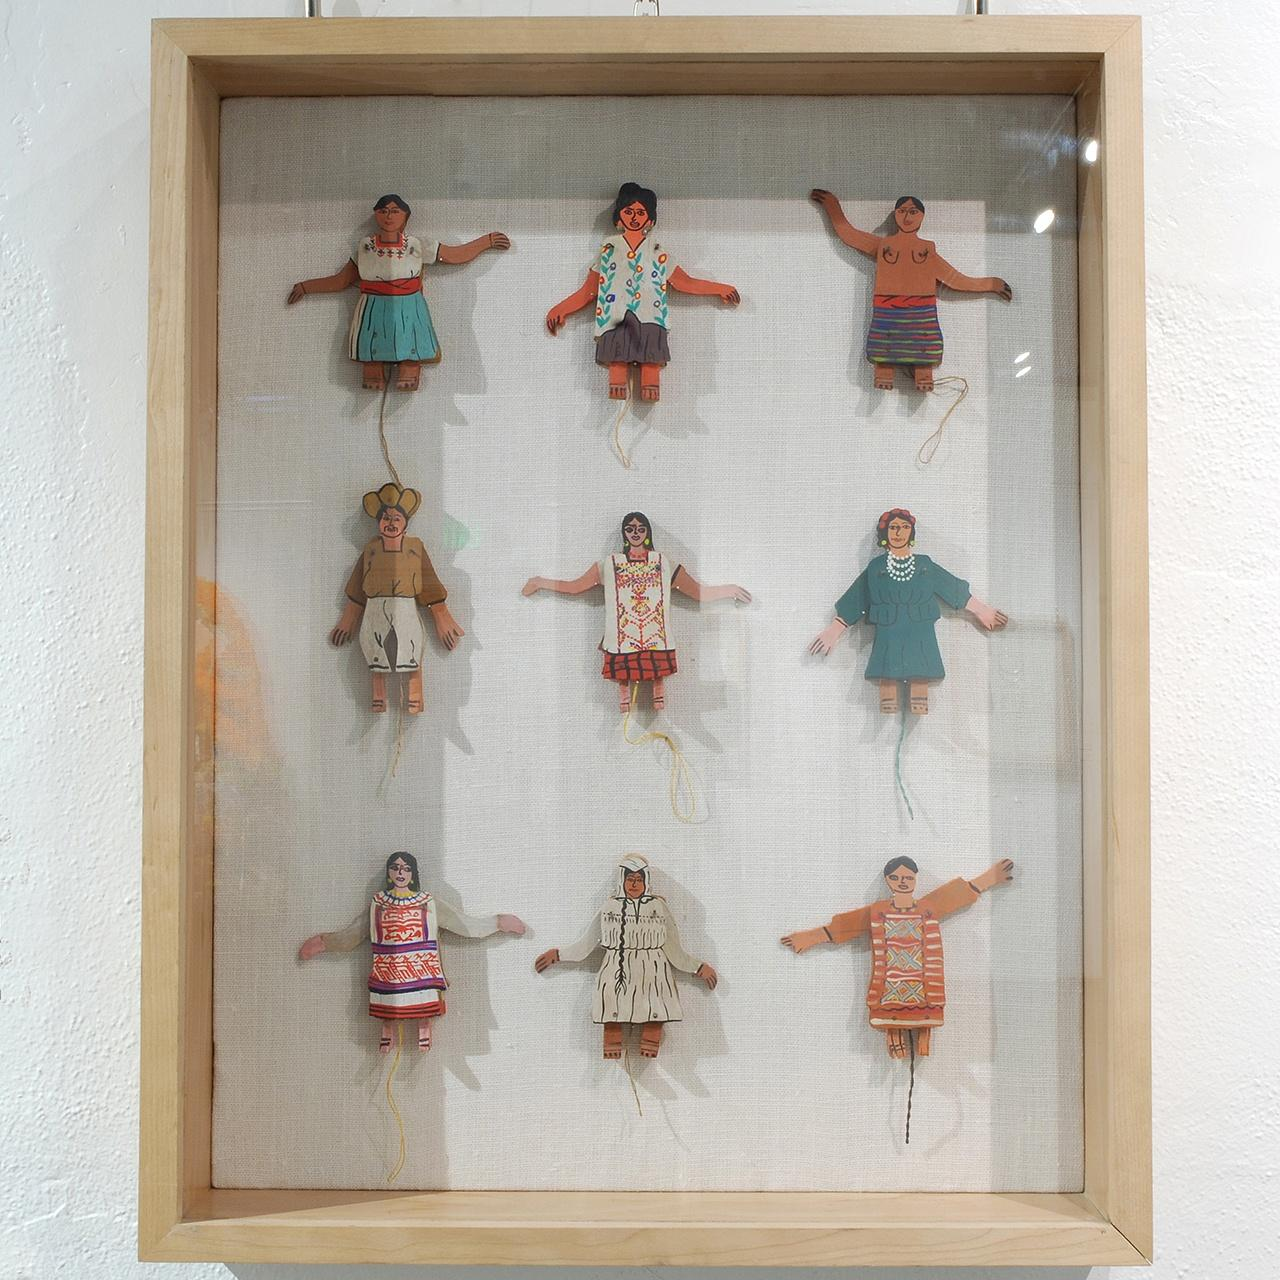 "Objects, Borders and Neighbors, Unknown artist, Set of 9 wooden dolls (movable arms), Wood, paint. Largest with arms down - L6.25"" x W3"" x D1"". Jim and Veralee Bassler Collection"